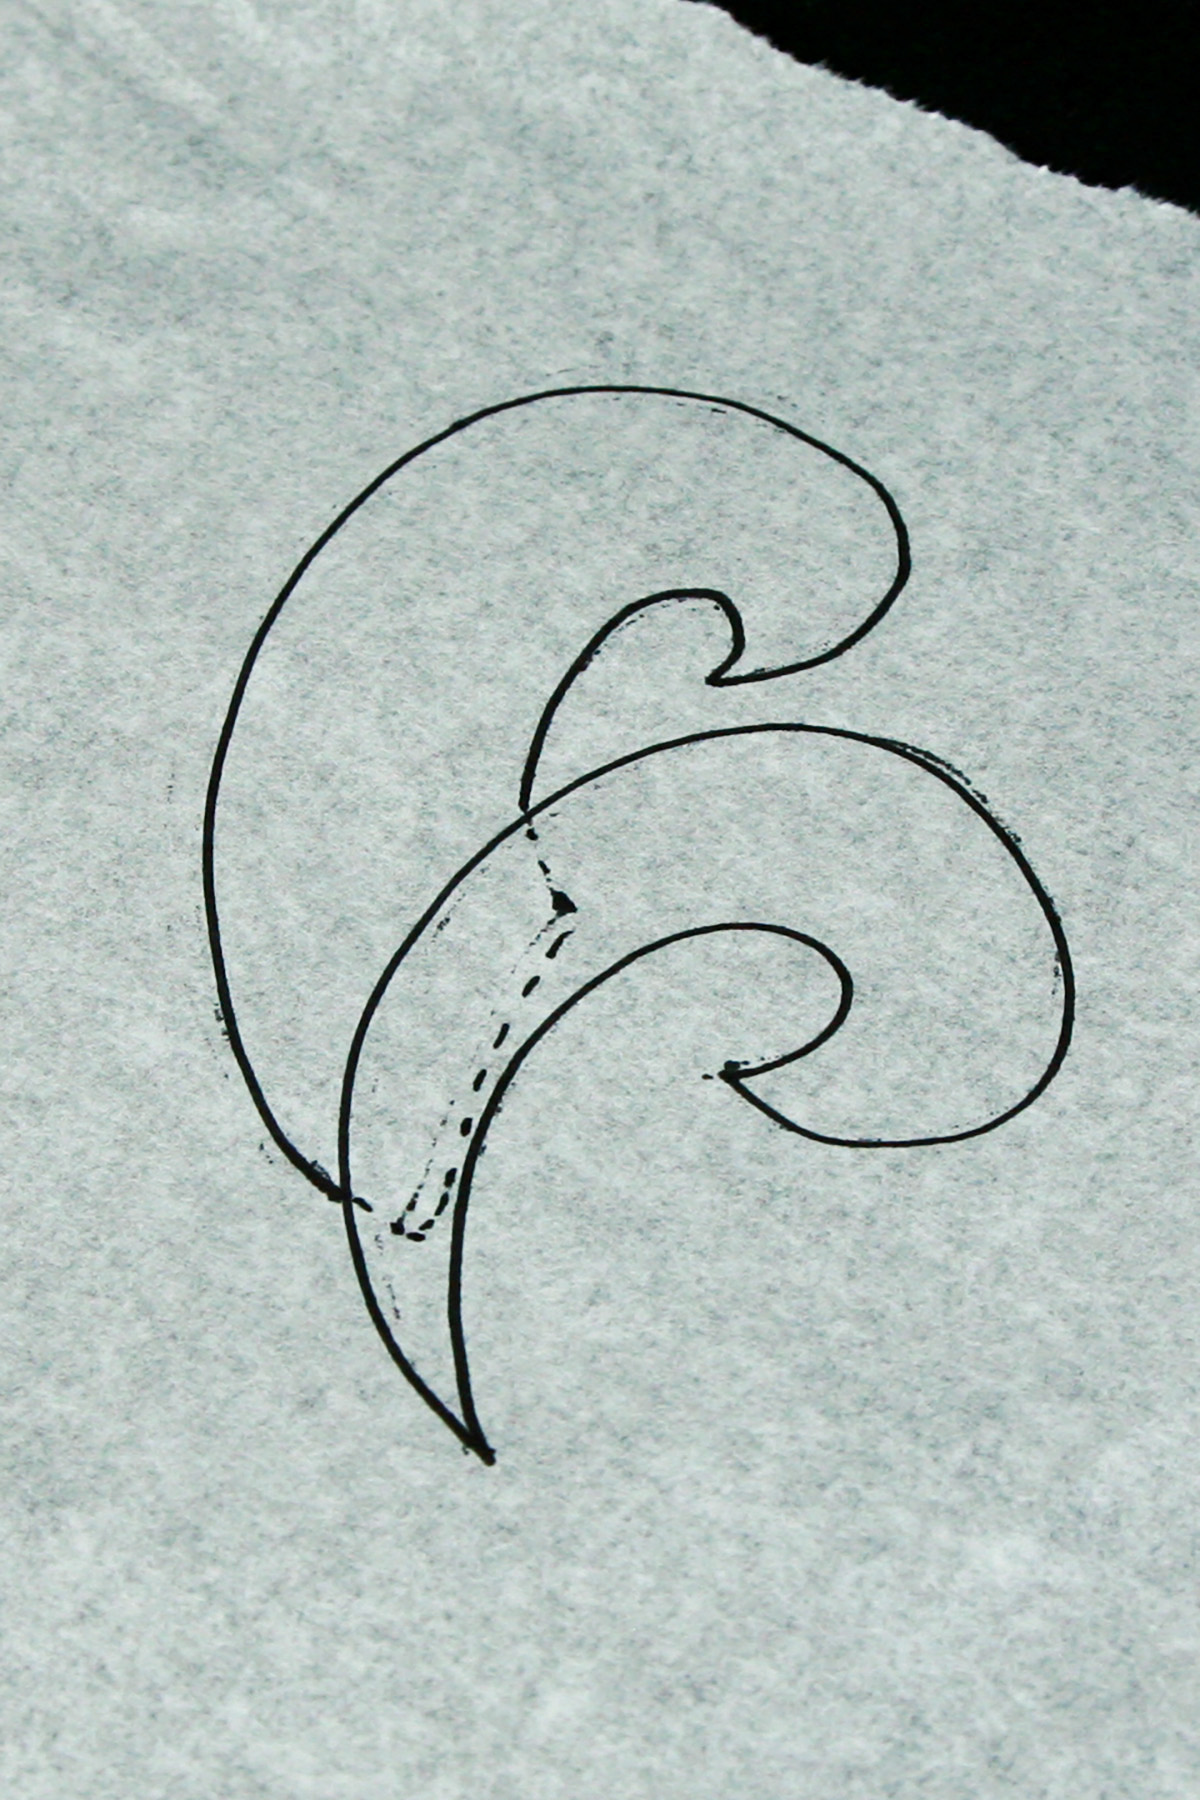 A small piece of paper with 2 swirls shapes drawn on it,in black marker.